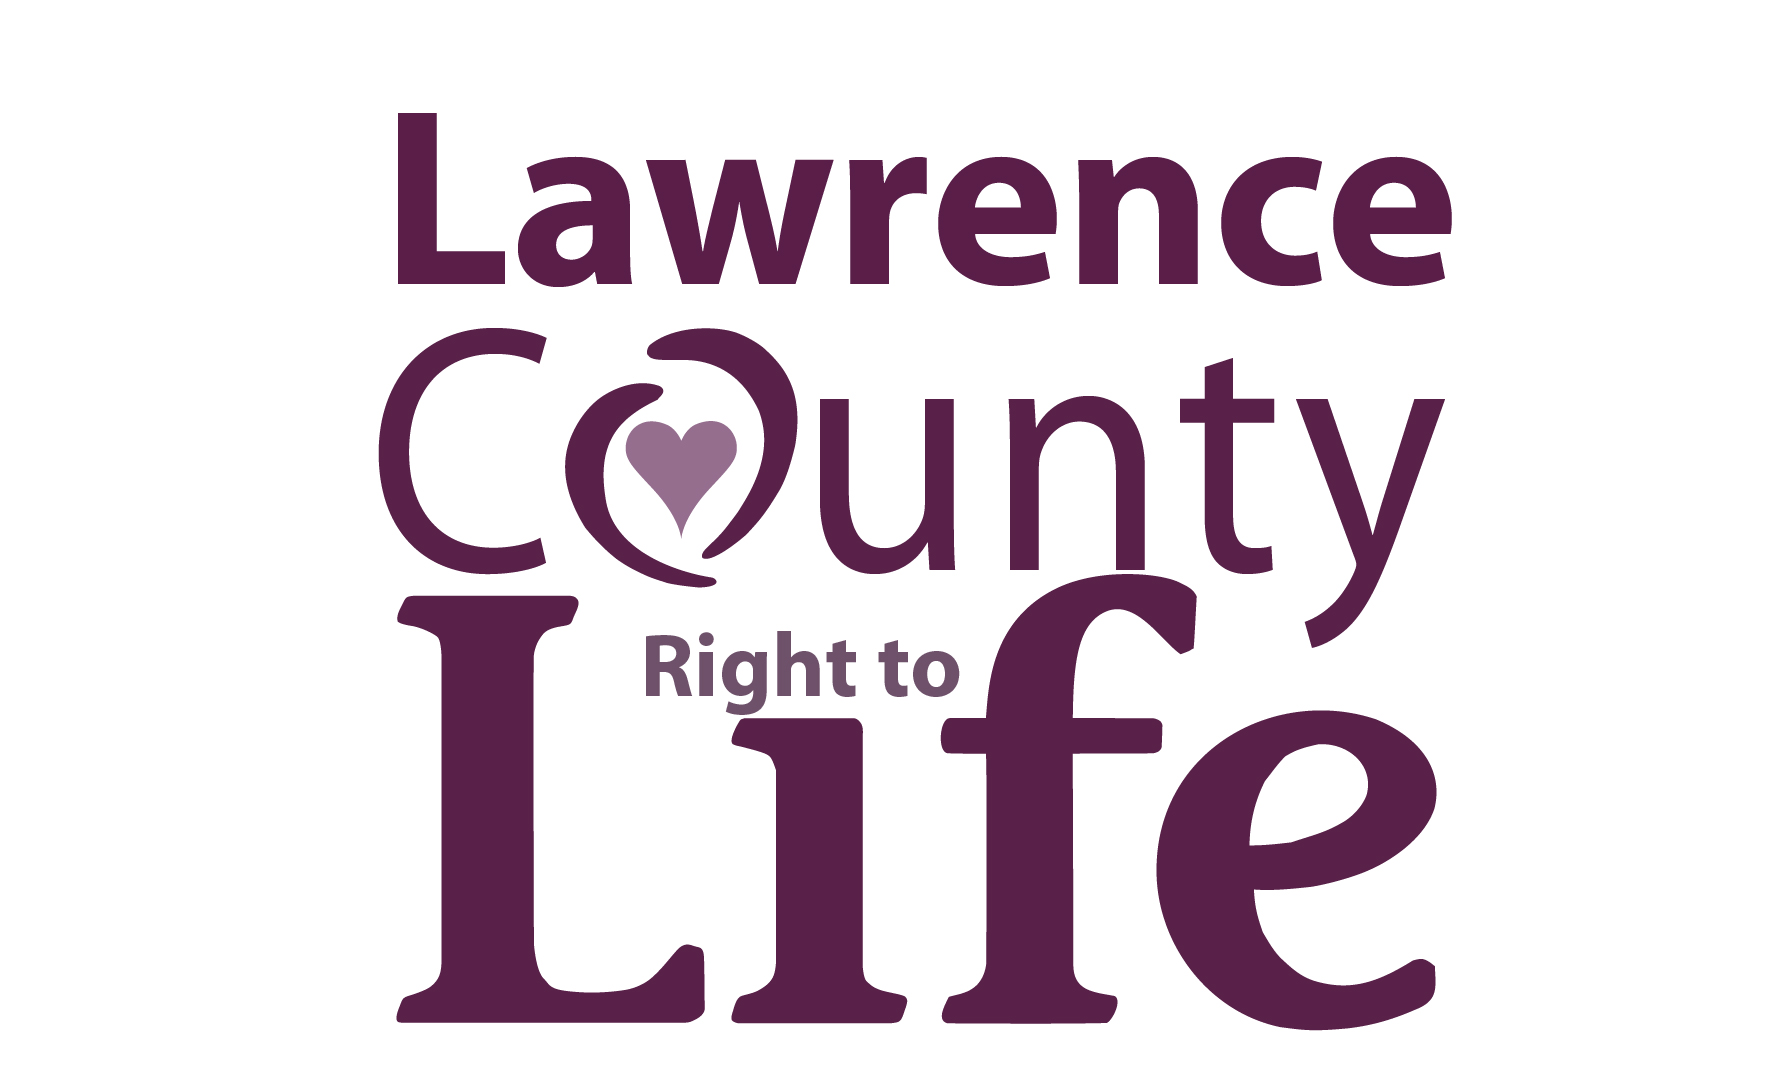 Lawrence_County_Right_to_Life_Logo.jpg